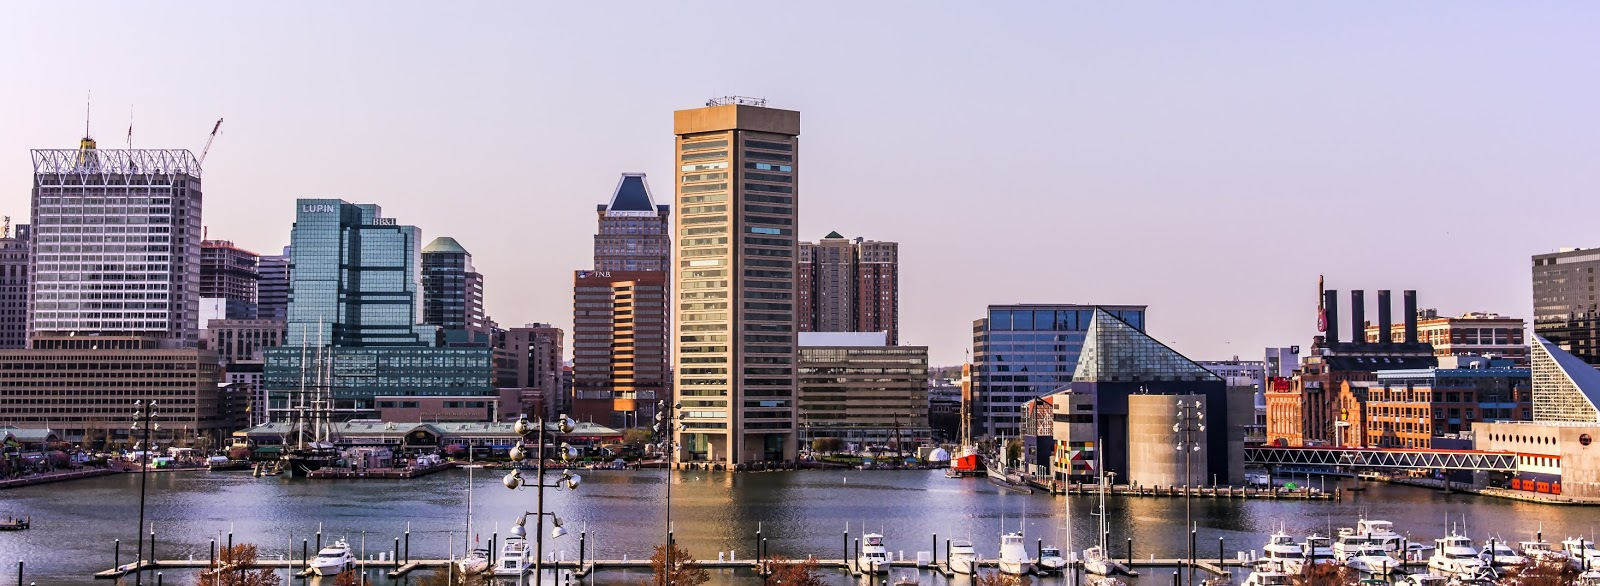 Things To Do In Baltimore Today